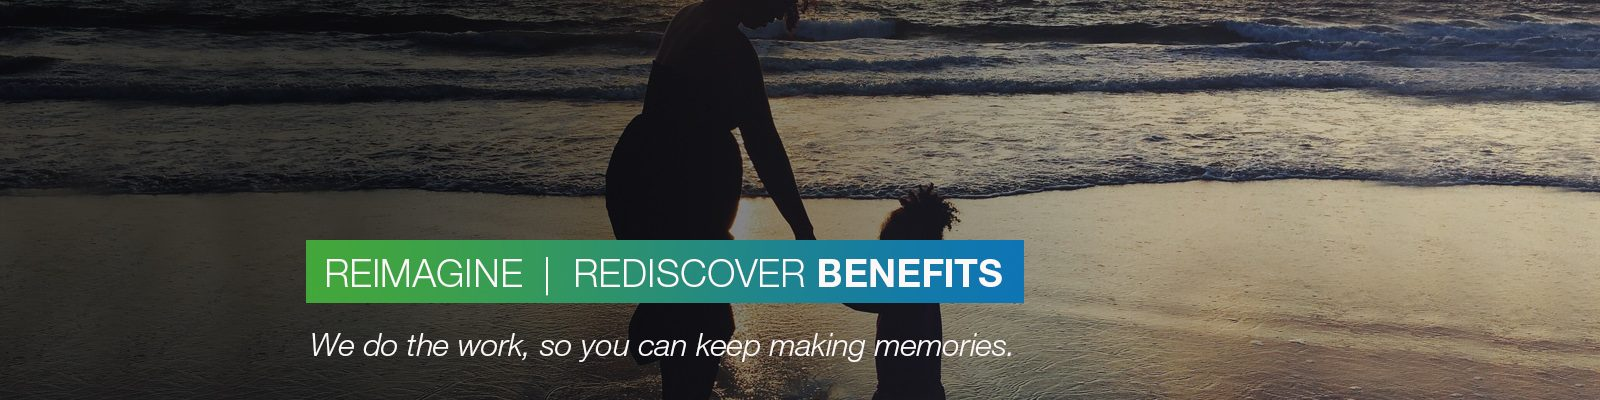 REIMAGINE | REDISCOVER BENEFITS: We do the work, so you can keep making memories.